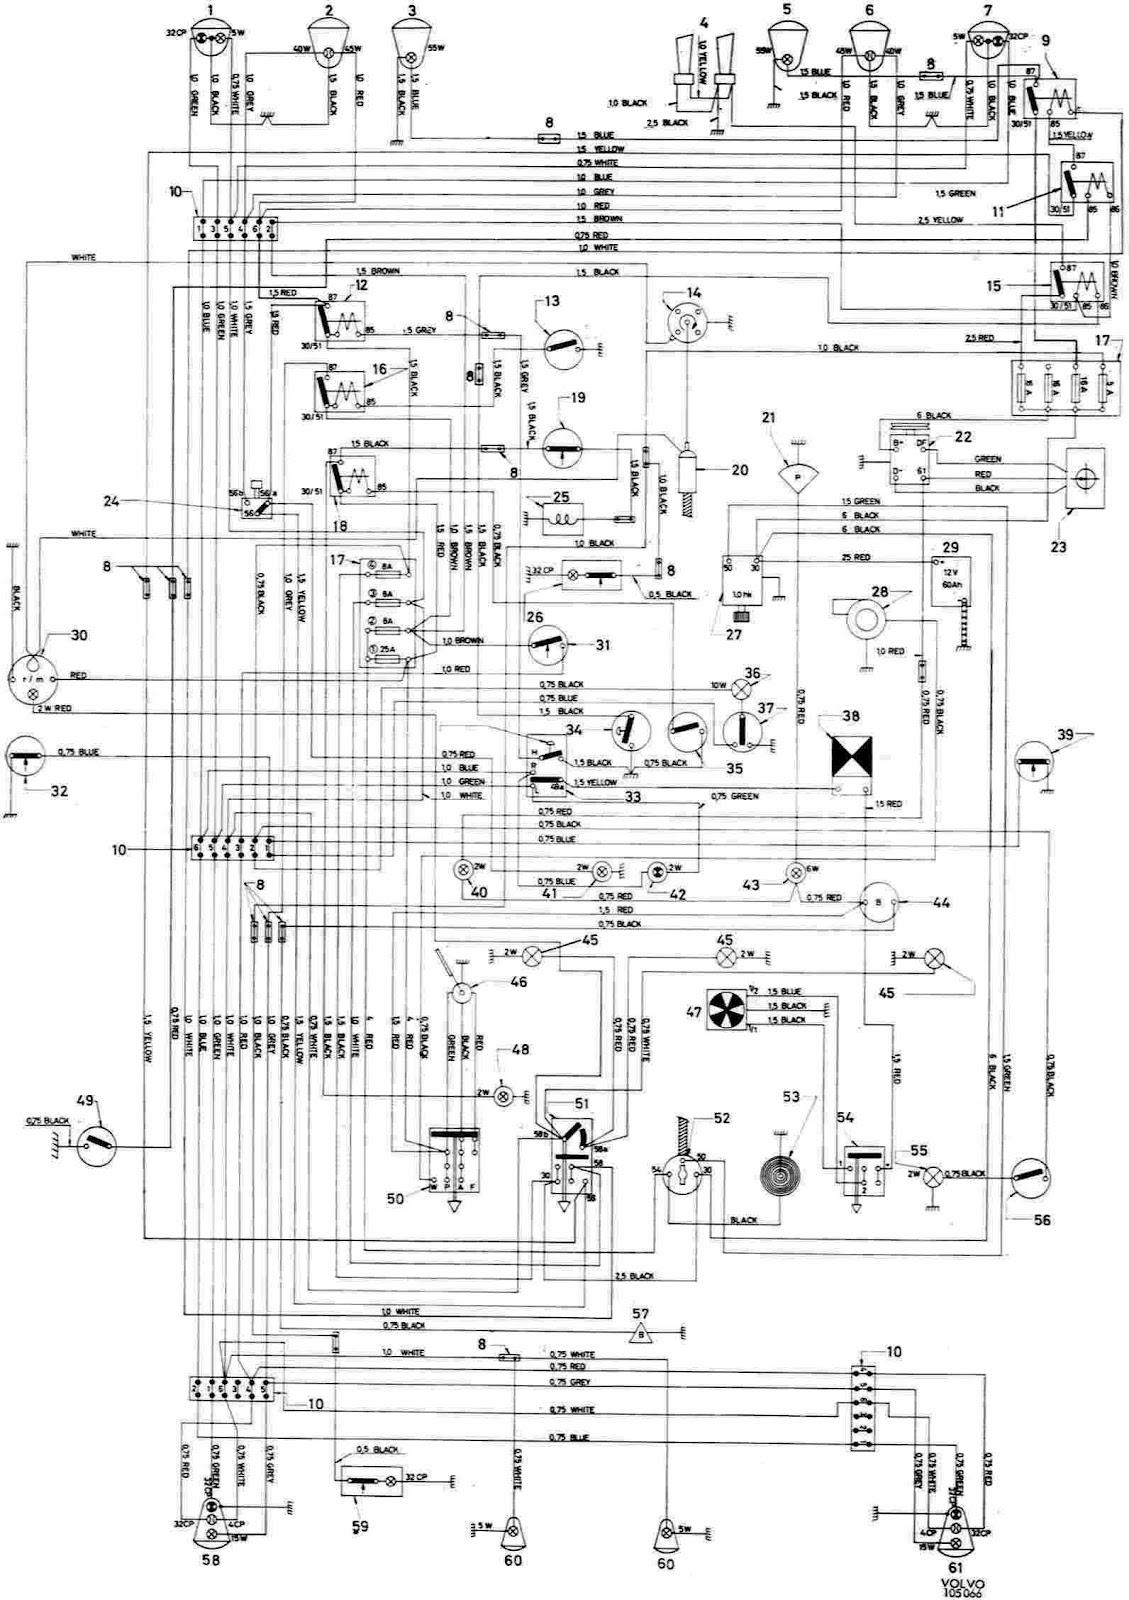 2001 volvo wiring diagram wiring diagram blog wiring diagram volvo v70 2000 [ 1129 x 1600 Pixel ]